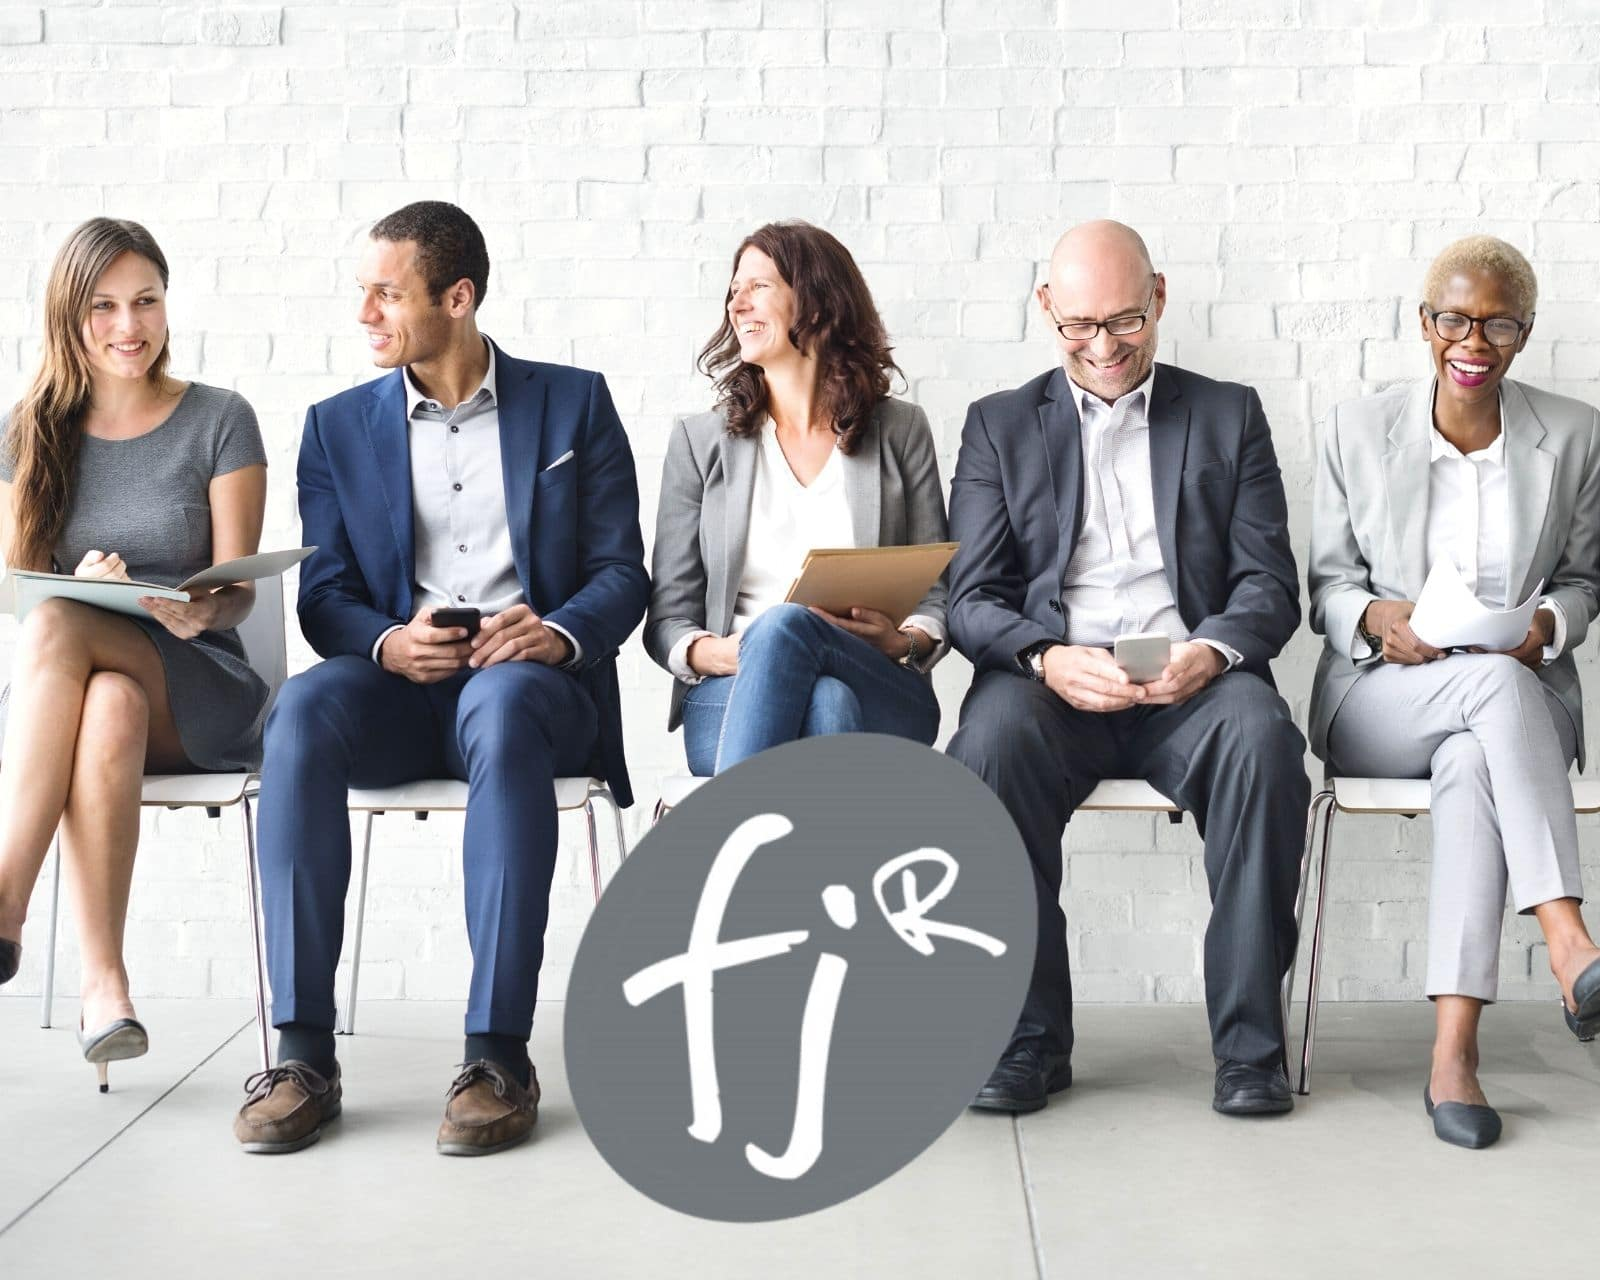 Freelance recruitment copywriter for hire to pen thought leadership articles and SEO driven content to help you market your recruitment agency and position yourselves as leaders in the industry. Article Writing Services, Copywriting Services, Blog Writing Services